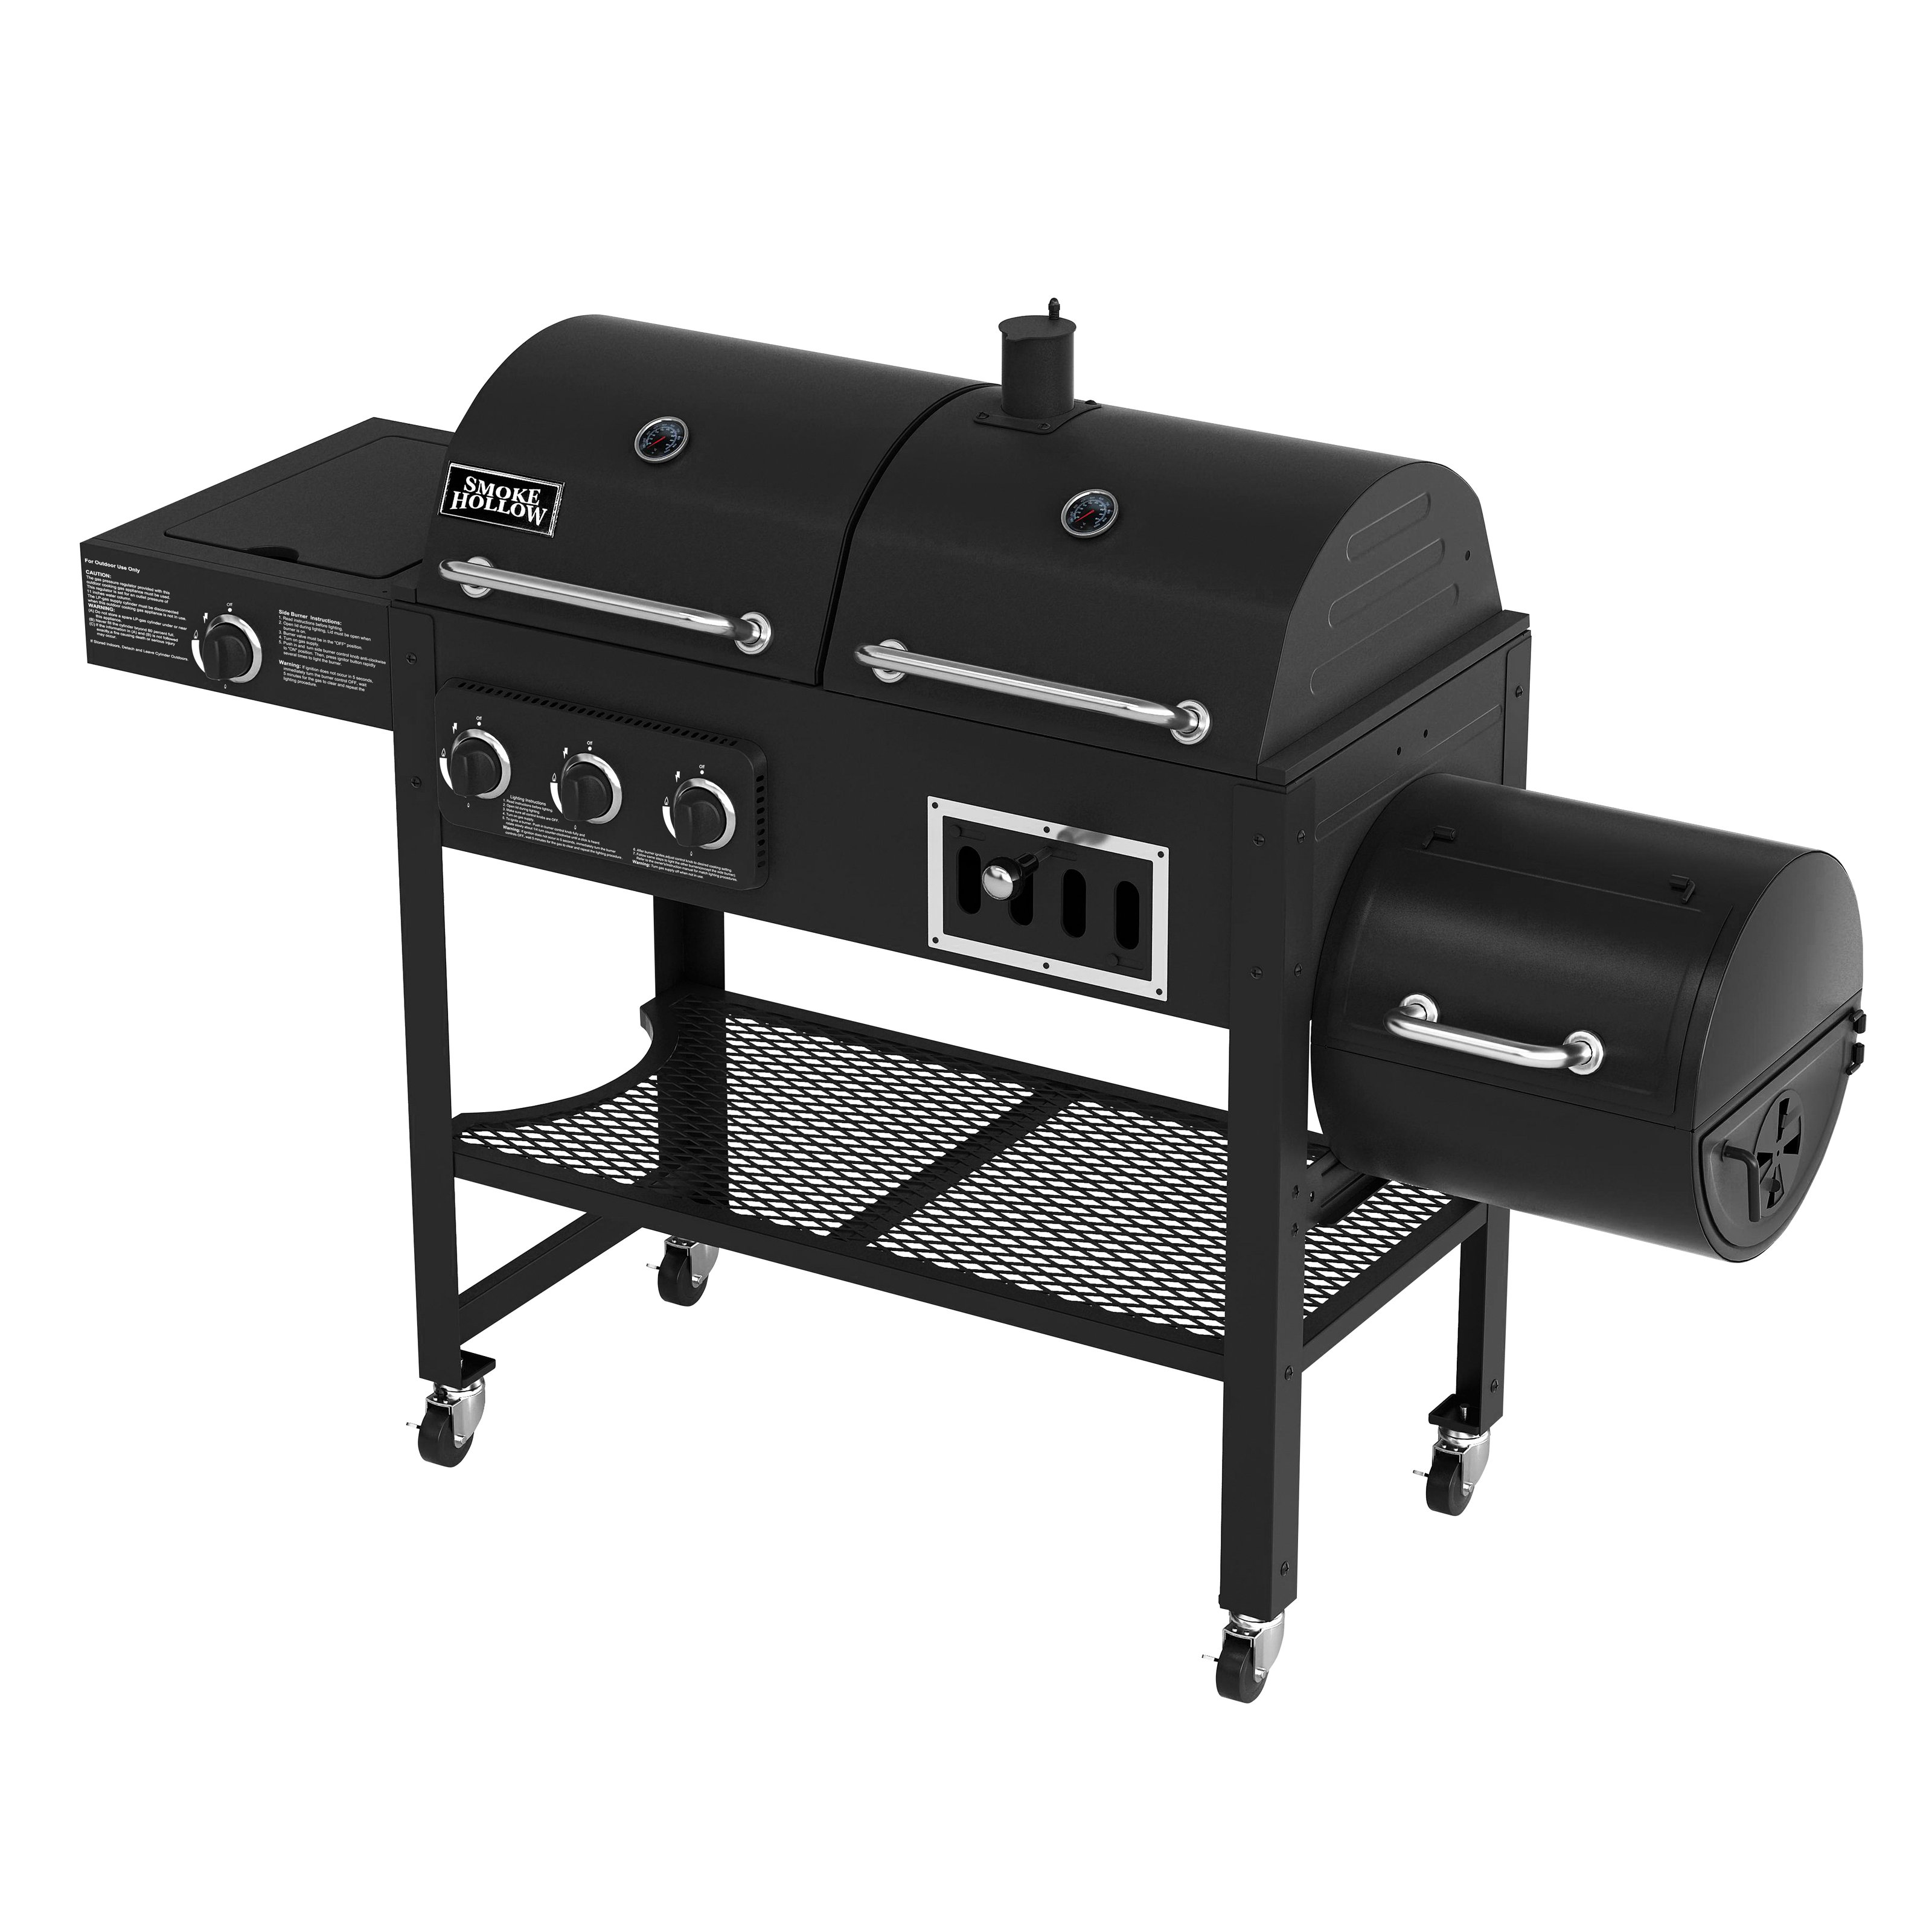 Smoke Hollow Gas/Charcoal Smoker Grill 3500